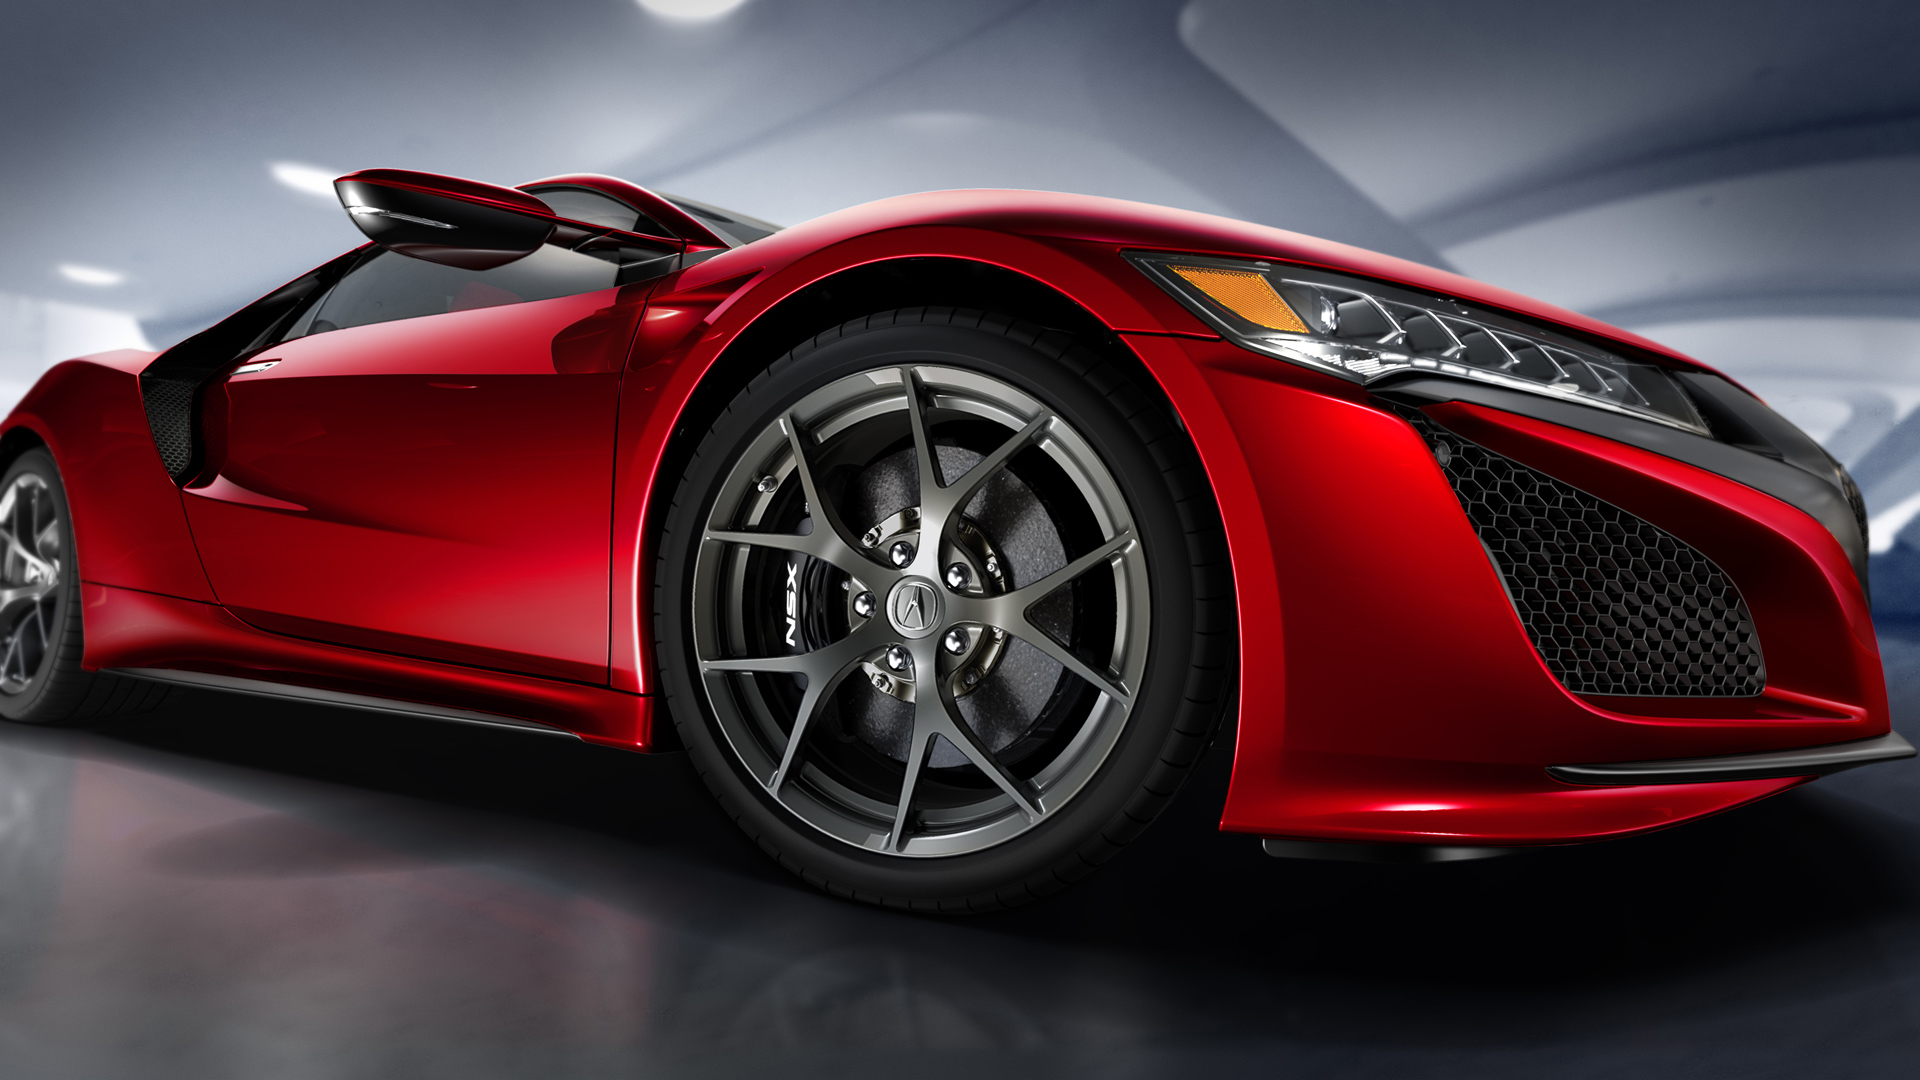 acura nsx la supercar aux 4 moteurs honda naias 2015. Black Bedroom Furniture Sets. Home Design Ideas